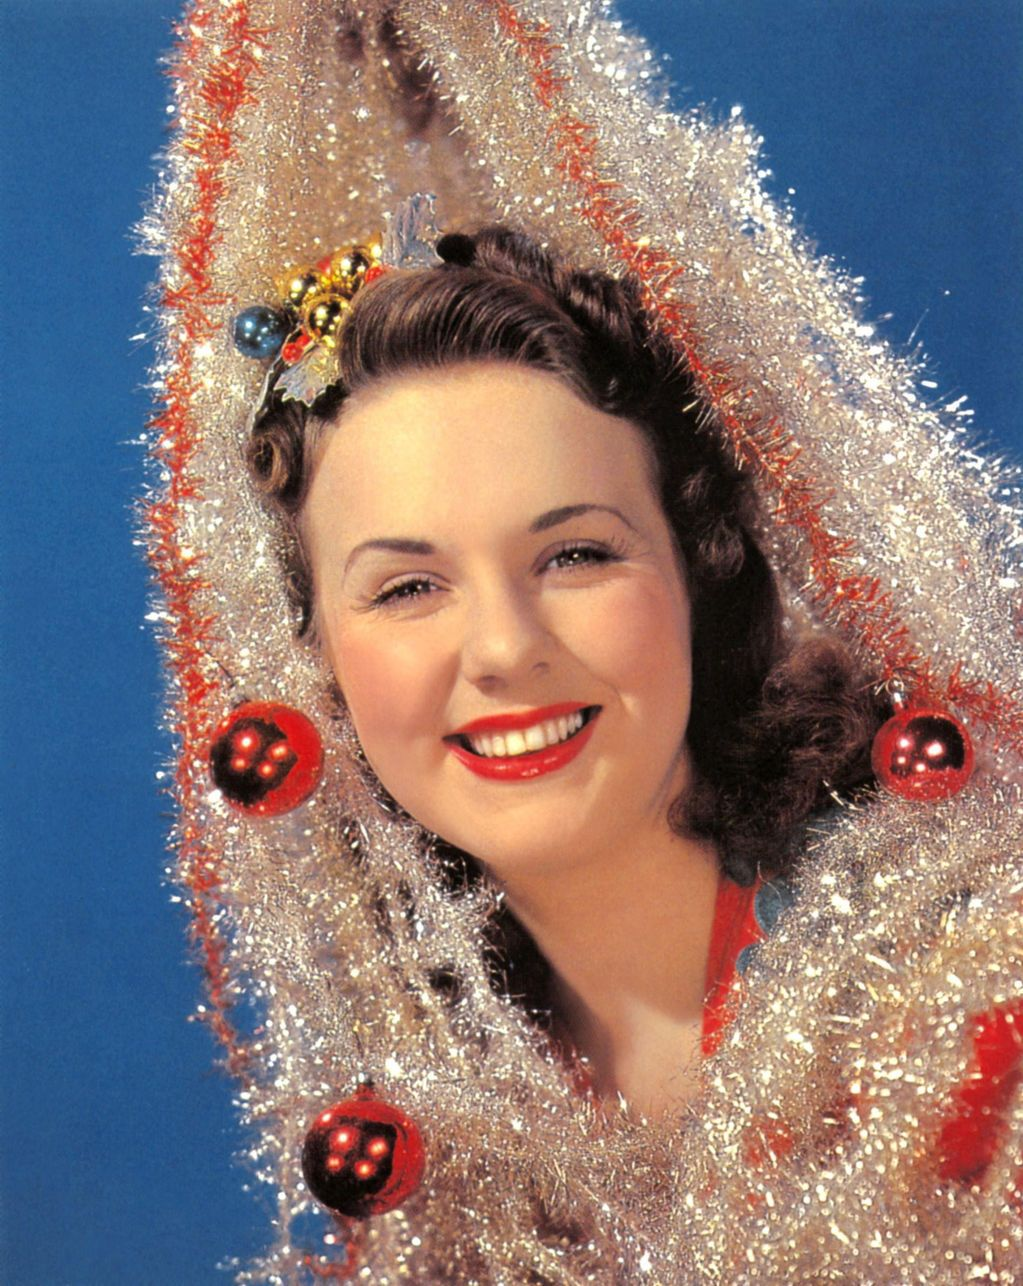 old movie stars photos | vintage movie star christmas action… OVER 60 FESTIVE & FABULOUS ...